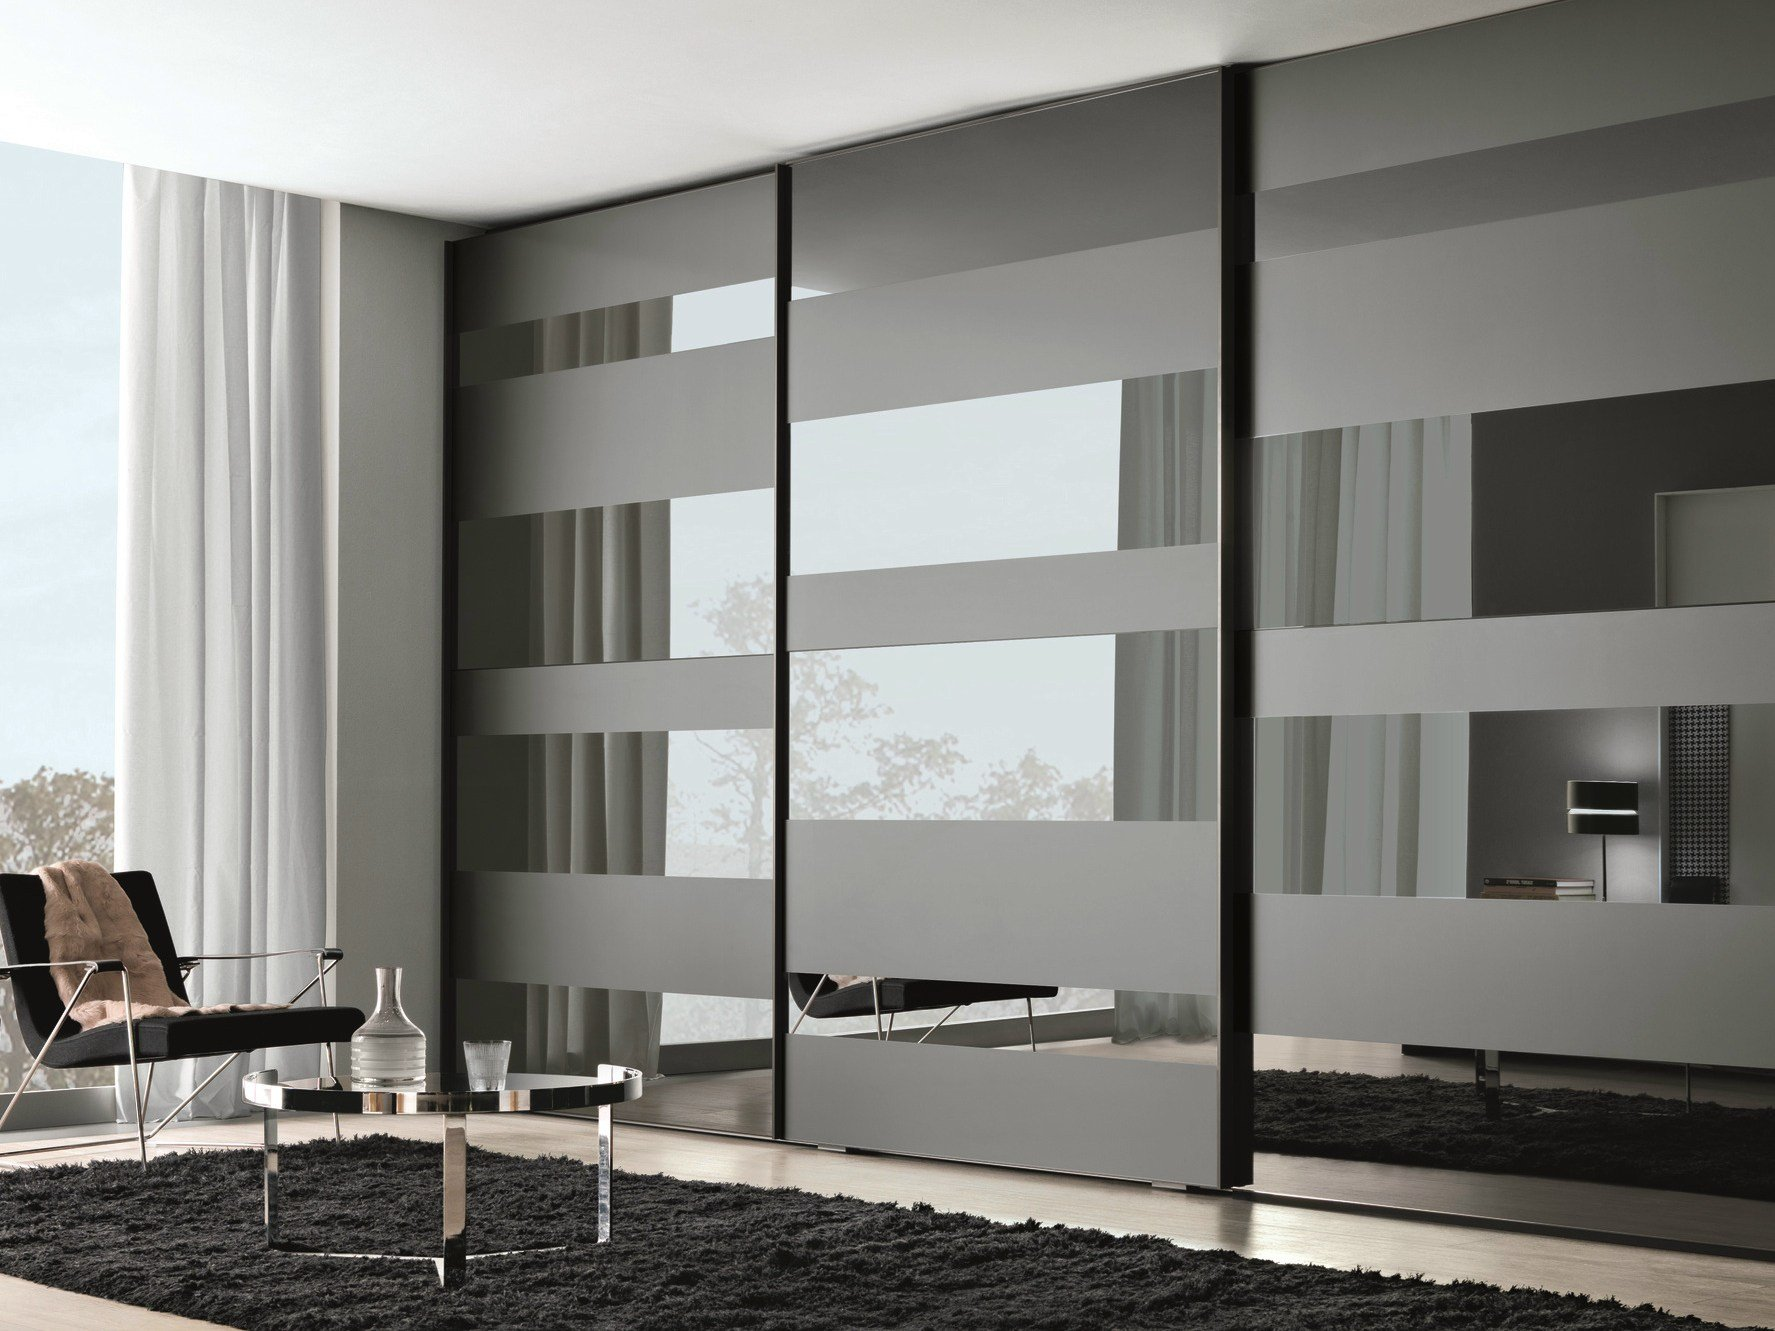 Segmenta new mirrored glass wardrobe by misuraemme for Back painted glass designs for wardrobe